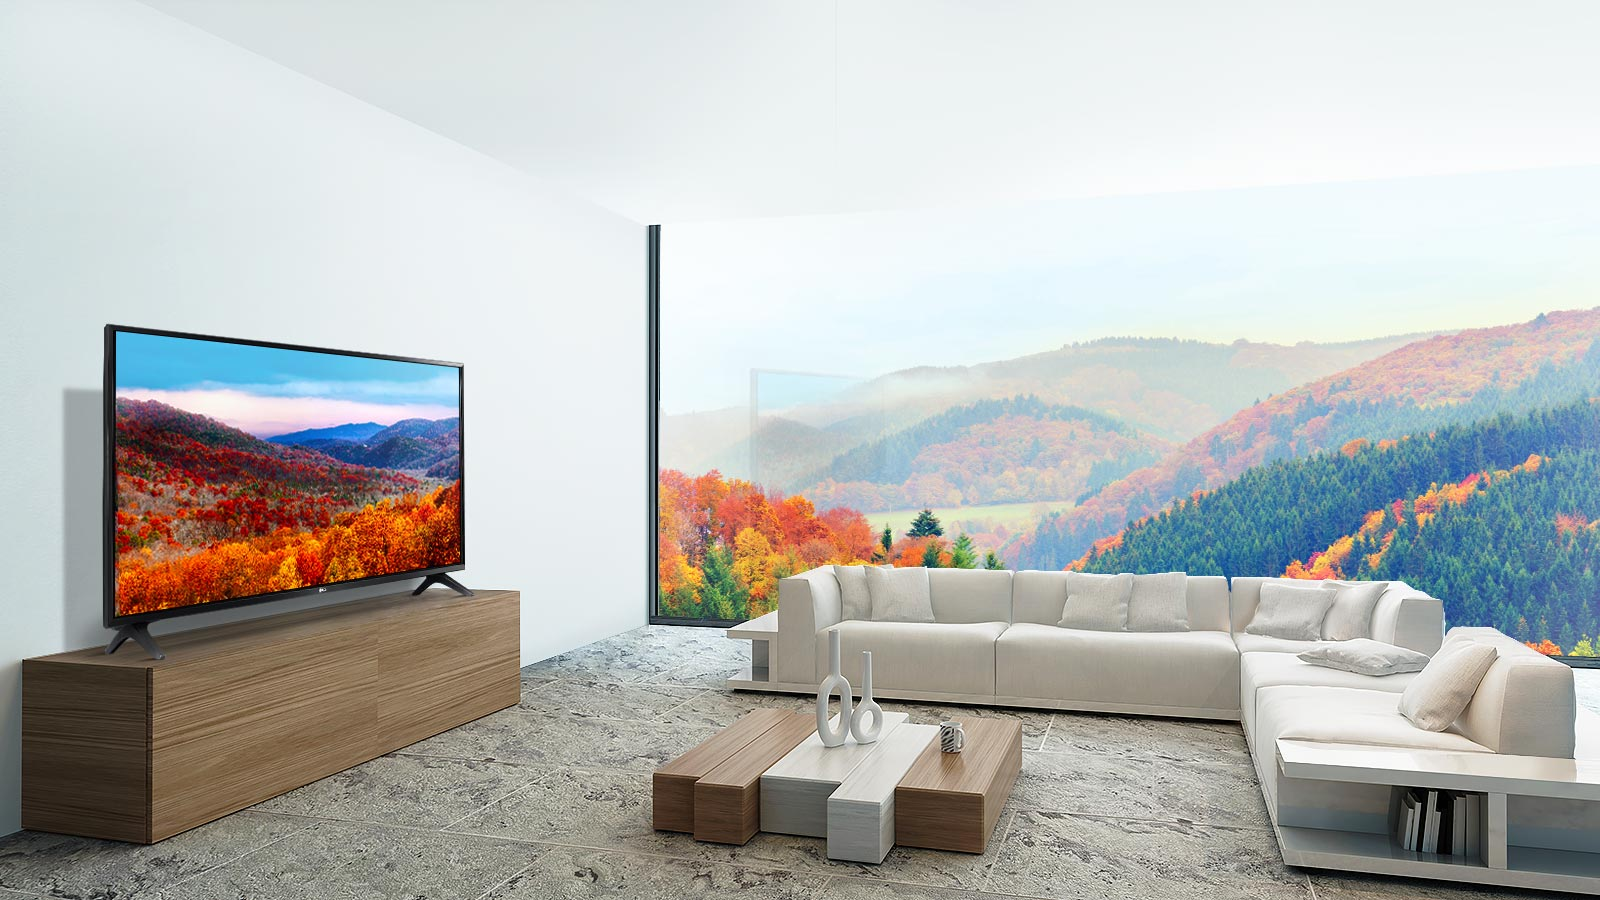 LG TV's - Sophisticated inside and out